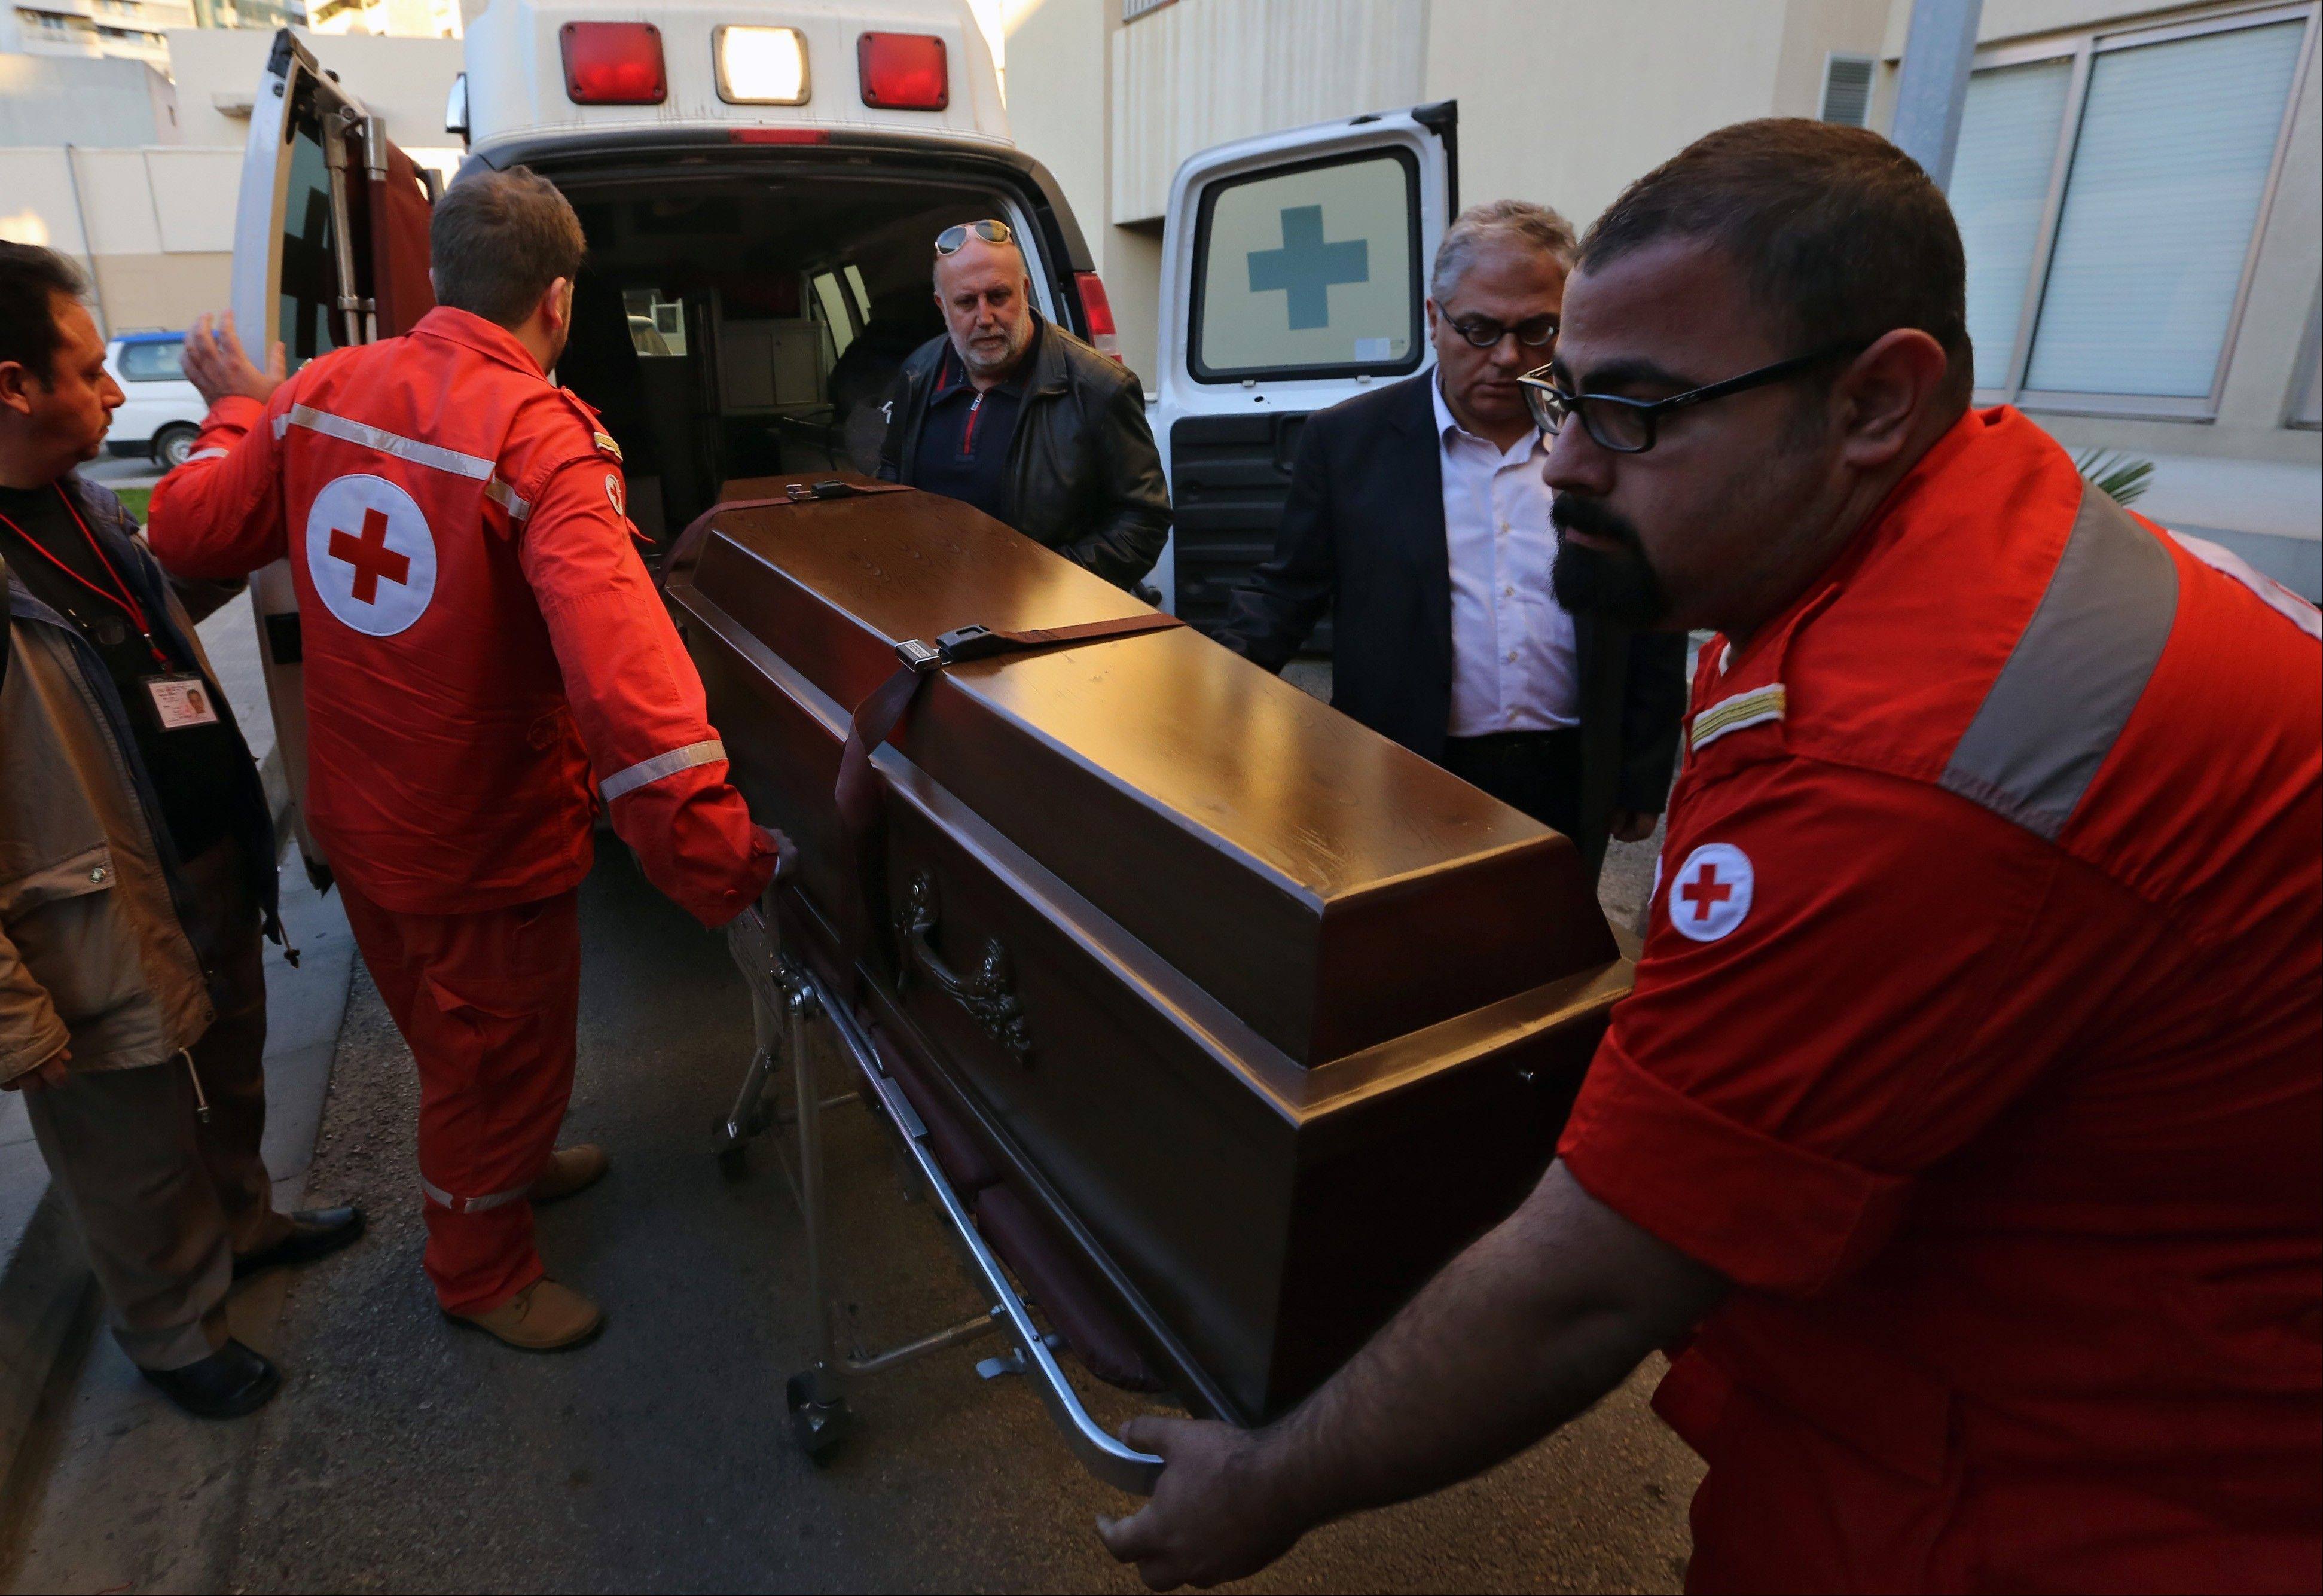 Associated Press Lebanese Red Cross workers carry the coffin of British doctor Abbas Khan, 32, who was seized by Syrian government troops in November 2012, into the Hotel-Dieu de France hospital in Beirut, Lebanon, Saturday, Dec. 21. The circumstances in which Khan died while in detention in Syria remain in dispute. A senior British official has accused Syrian President Bashar Assad�s government of effectively murdering Khan, while the Syrian authorities say the doctor committed suicide and there was no sign of violence or abuse.